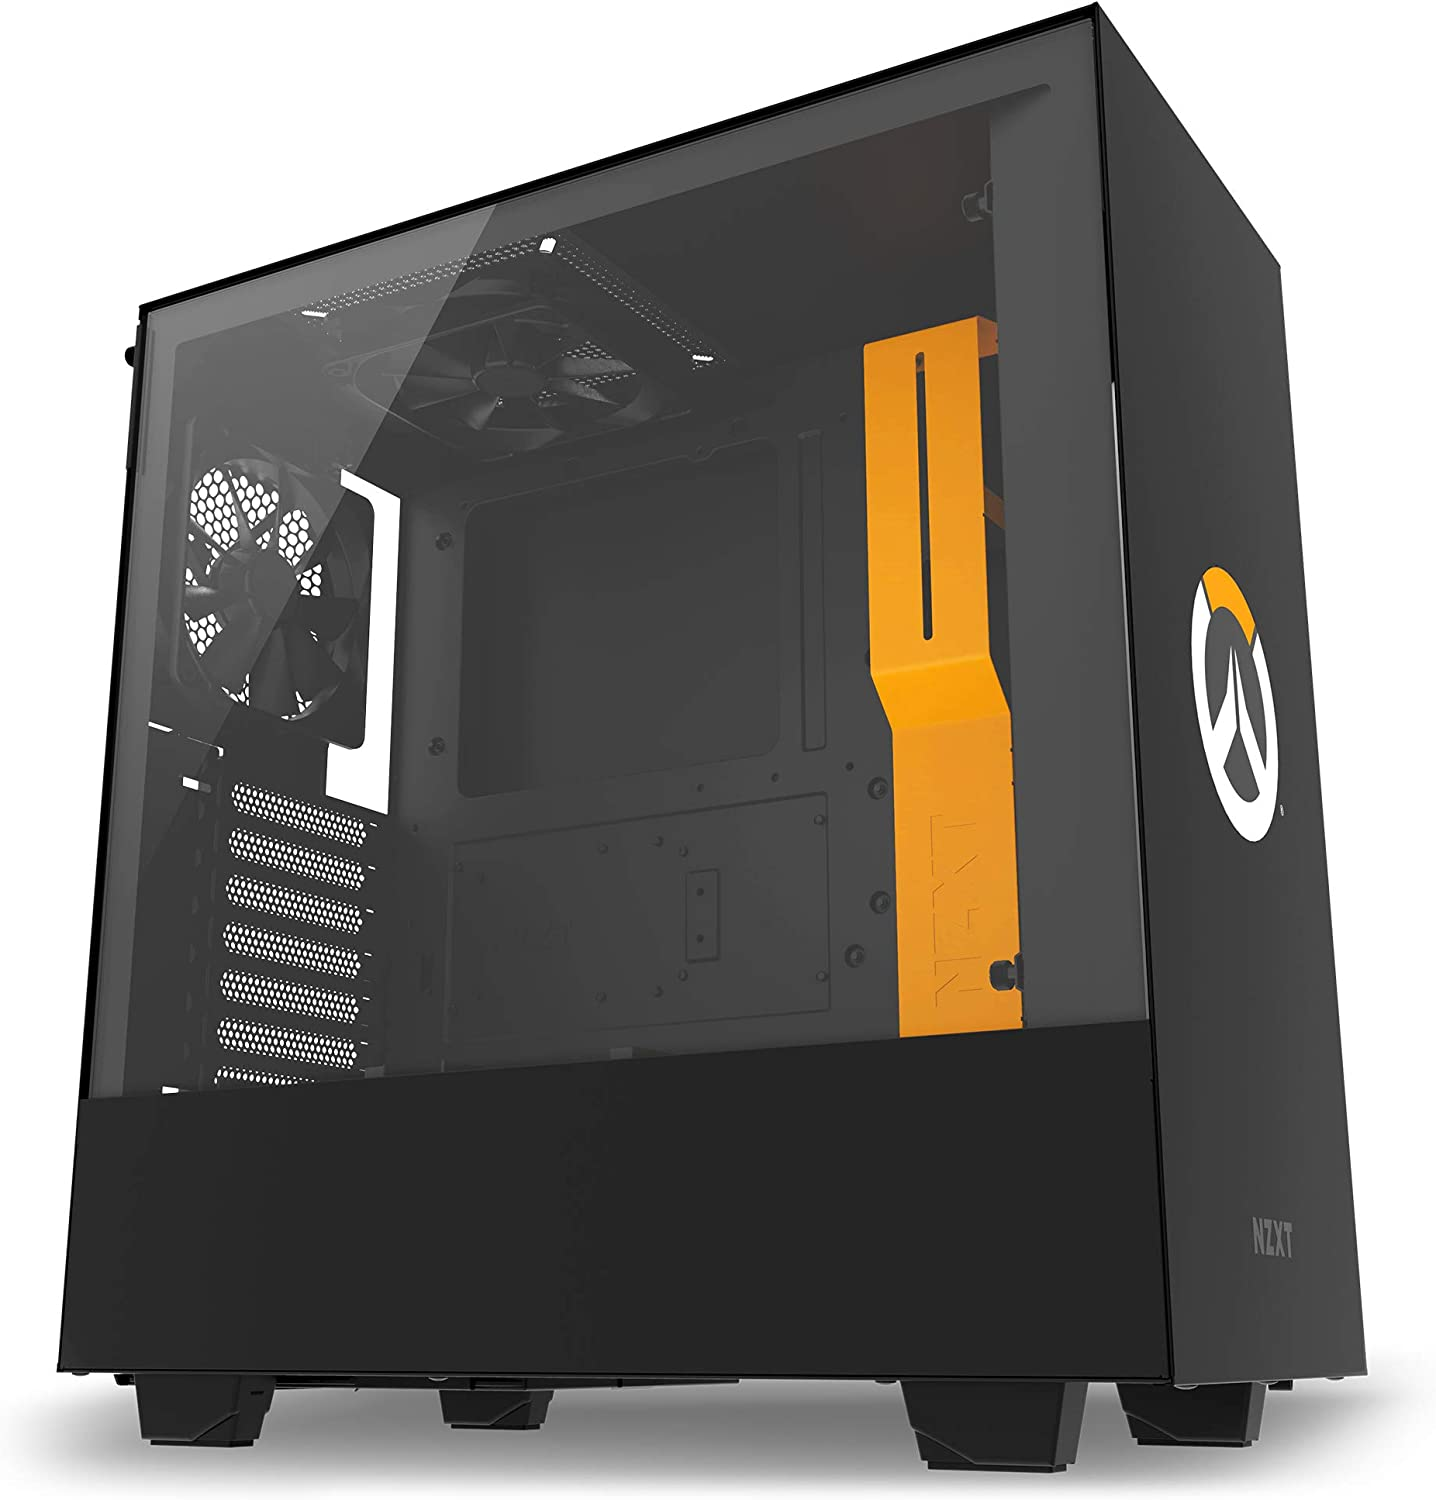 NZXT small ATX Case